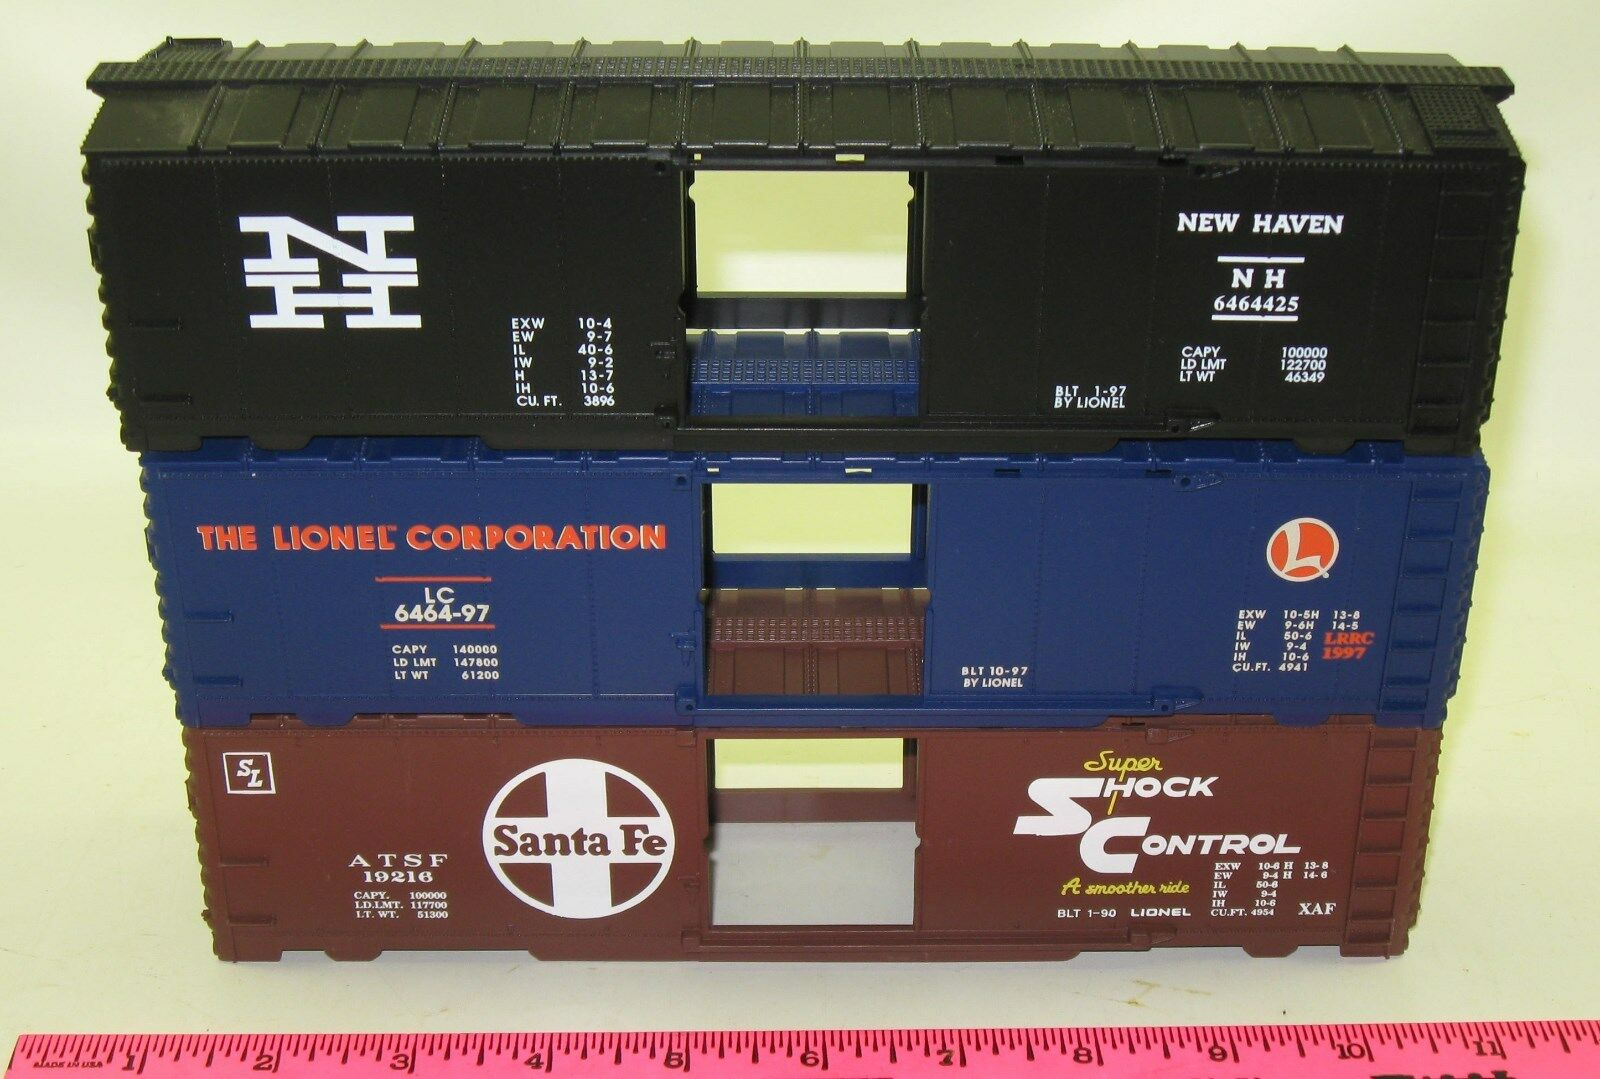 New Lionel Shell  6464425 New Haven, 6464-97 LC, & 19216 Santa Fe boxcars